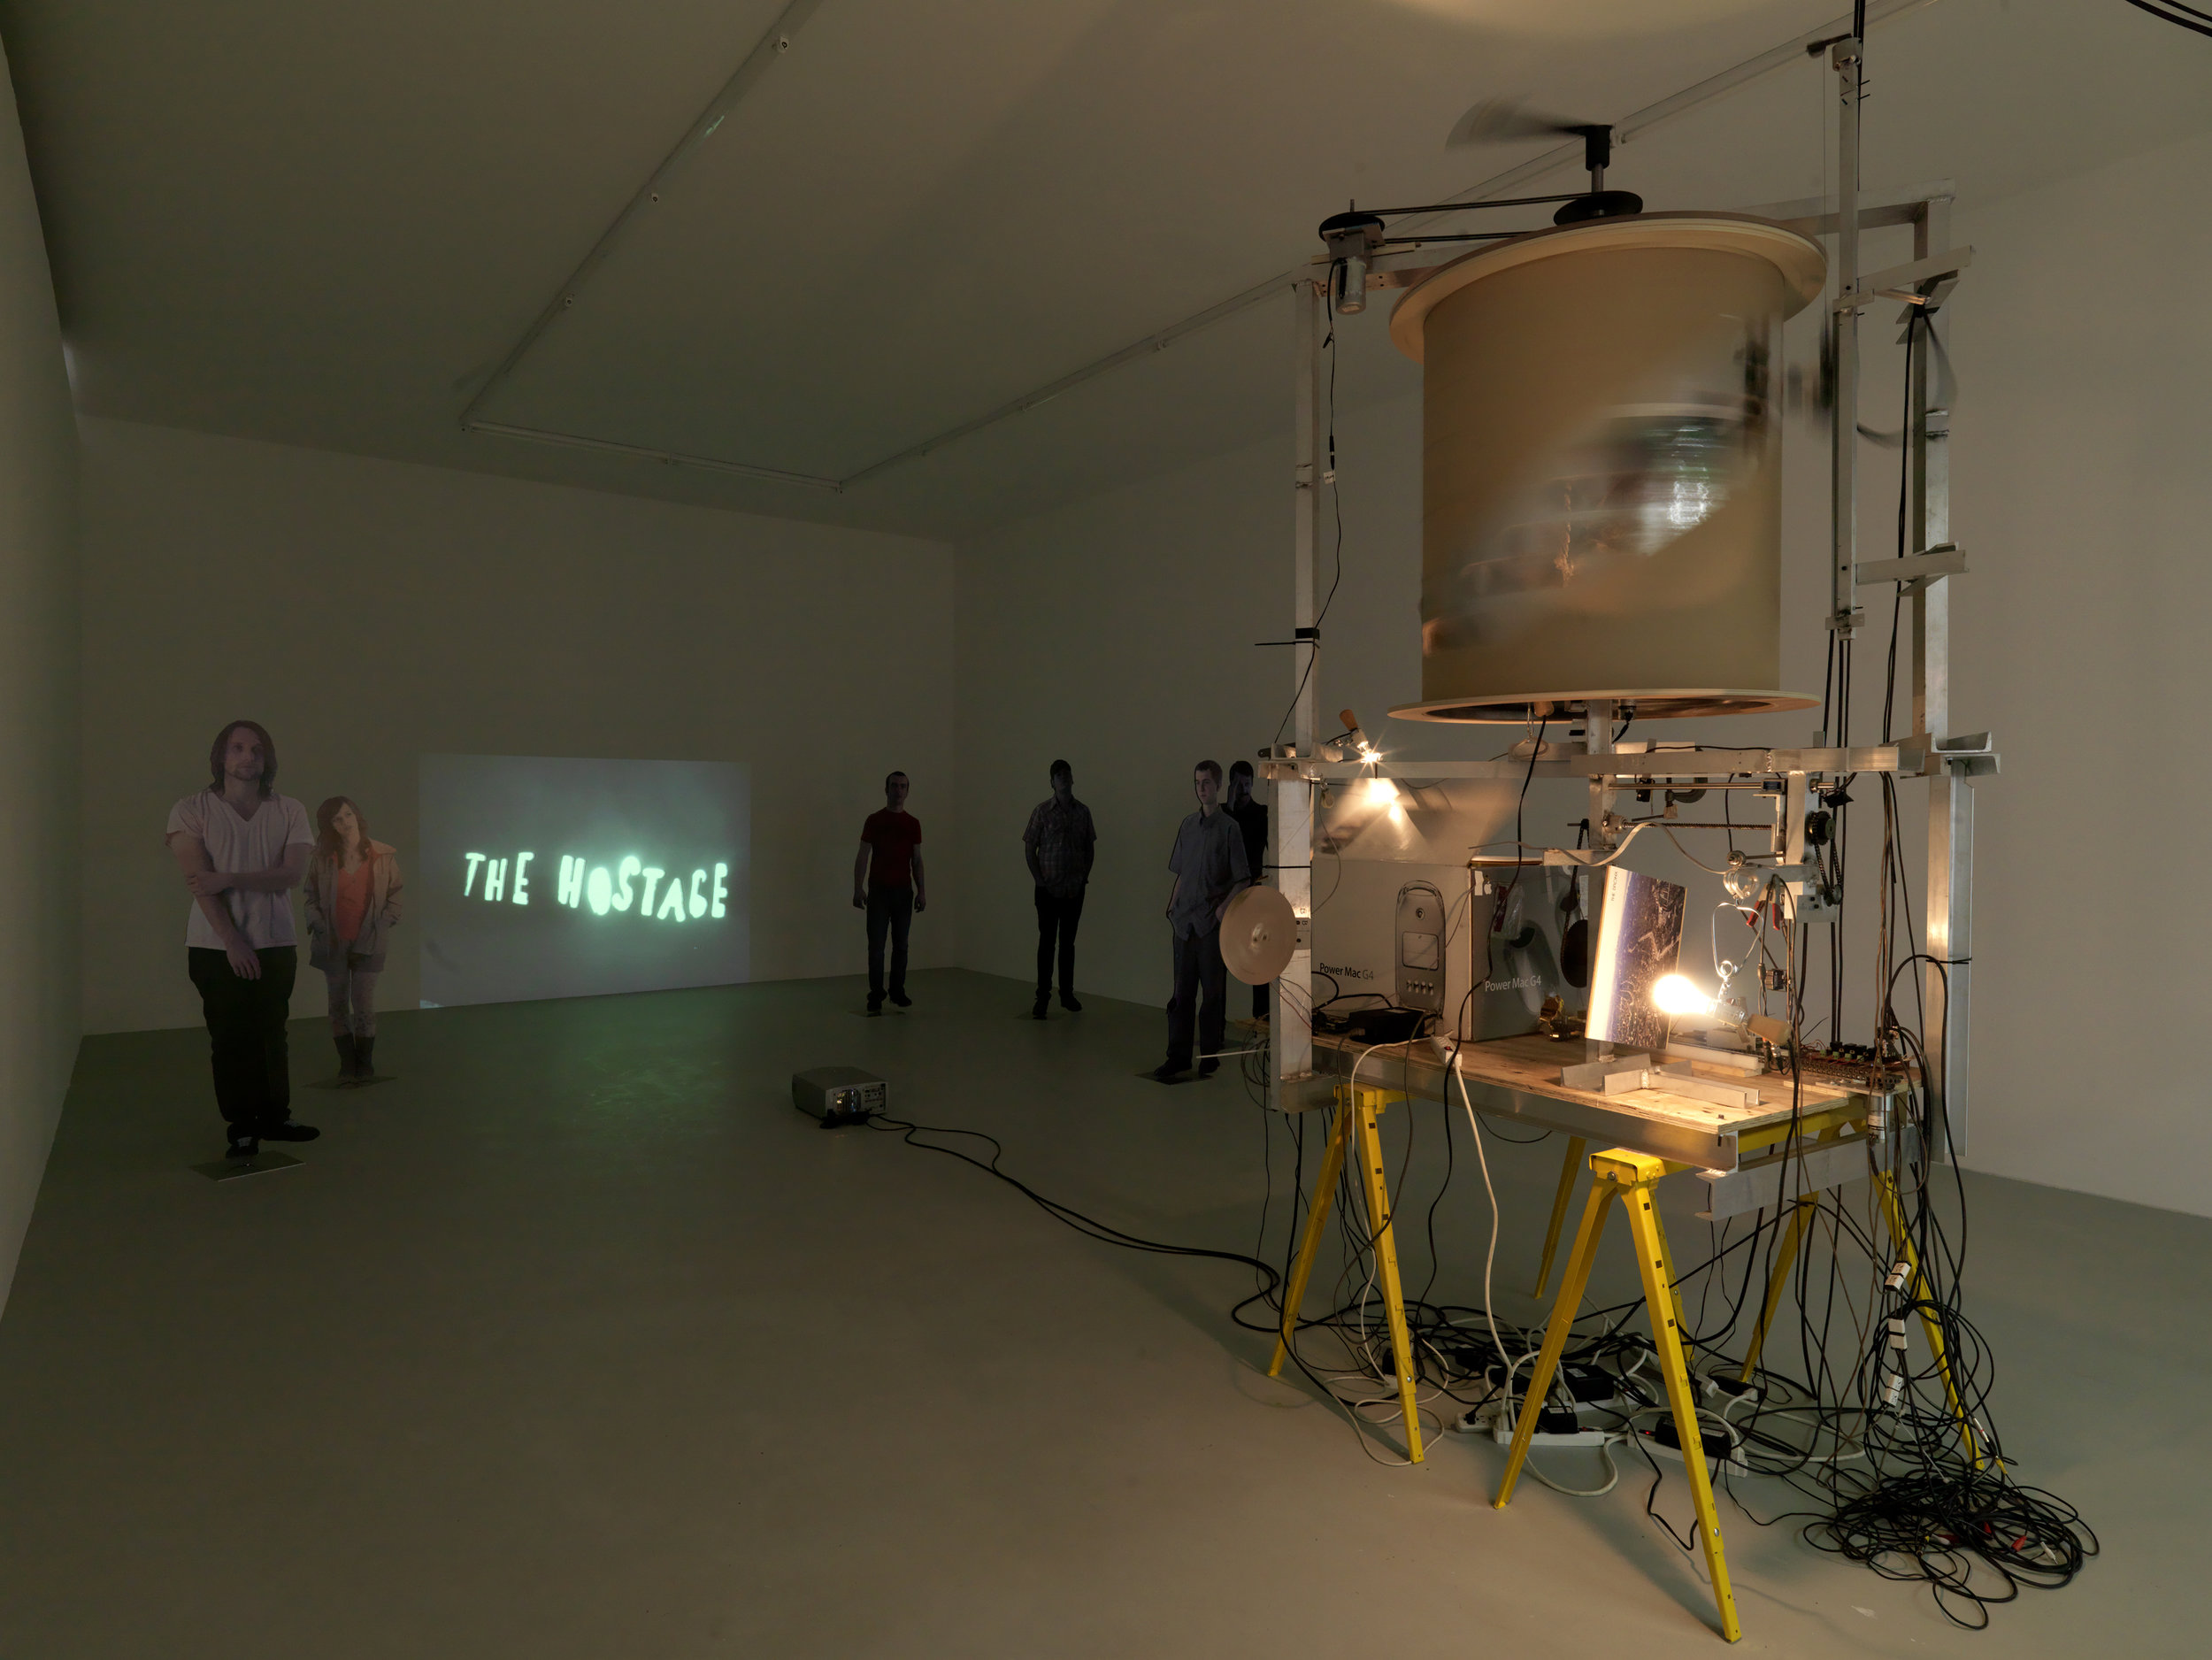 "Paris     ""Neïl Beloufa: The enemy of my enemy""    In his videos embedded in sculptural environments, as well as in his first feature film,  Occidental  (2017), Neïl Beloufa has made a strategy of sidestepping expectations to redirect attention to structural questions of politics and power. Here, Beloufa ups the ante of his culture jamming to expose the discourses and strategies of modern propaganda across the board, from Far Left to Far Right. The clincher is that the exhibits—including artifacts such as a baseball signed by Tony Blair, loans from museums of military history, and artworks by the likes of Gustave Courbet and Thomas Hirschhorn, as well as by Beloufa himself—are installed on robotically controlled display units. The automated rearrangement of these displays continuously makes and unmakes the connections between them, forcing a literal and metaphorical repositioning of the viewer in relation to the panoply of competing ideological agendas that define our time, and the art made within it.   —  Alexander Scrimgeour    Source:  https://www.artforum.com/print/previews/201801/neil-beloufa-the-enemy-of-my-enemy-73289"